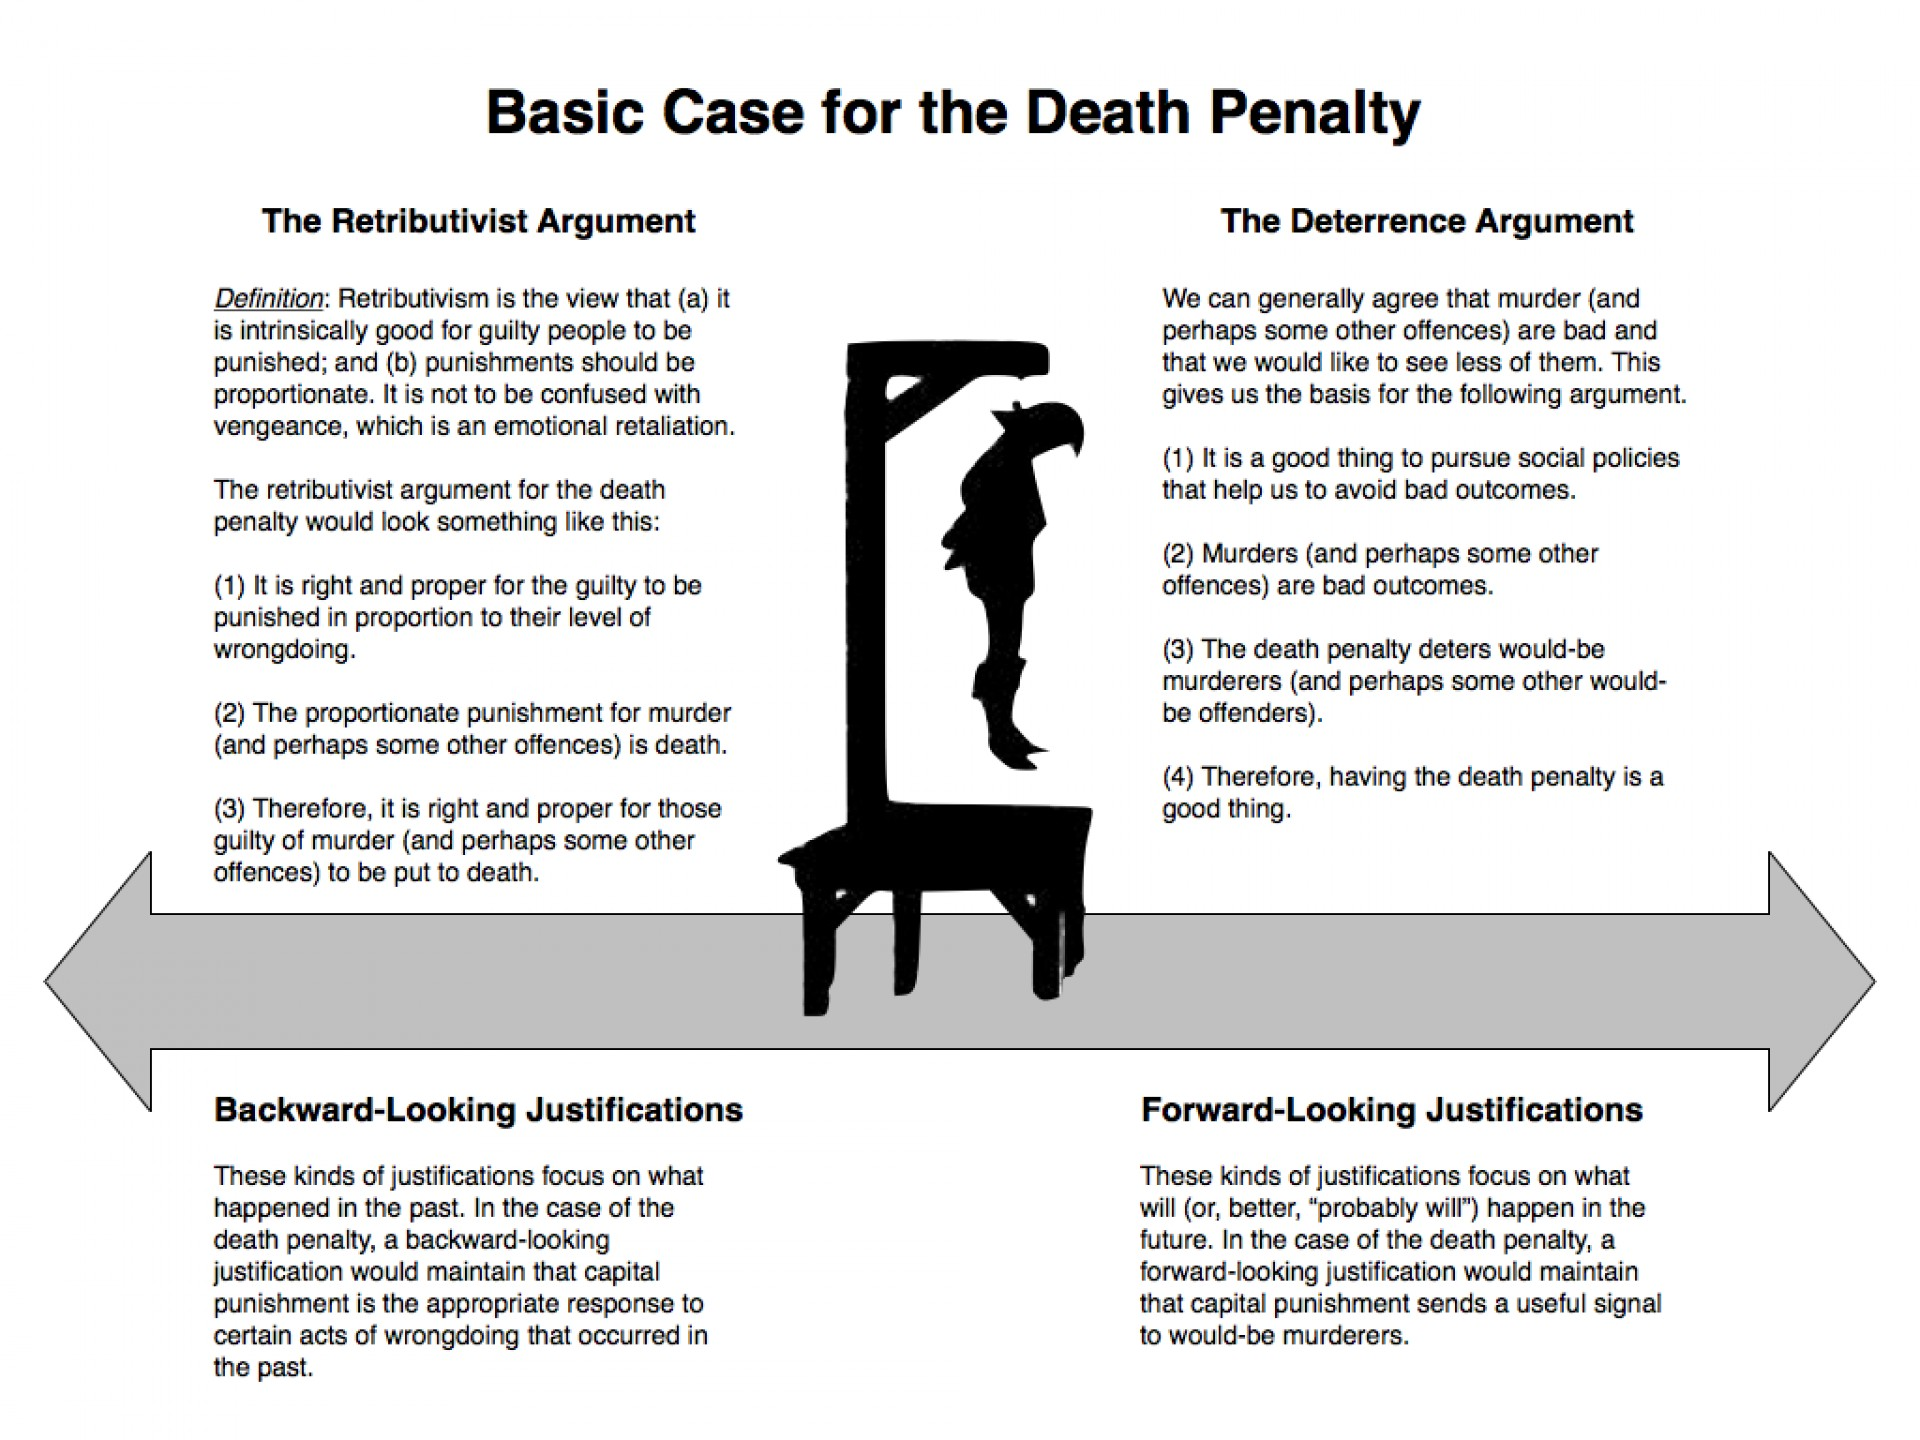 006 Deathpenaltydebate Arguments For Death Penalty Essay Breathtaking Advantages And Disadvantages Of Cons 1920